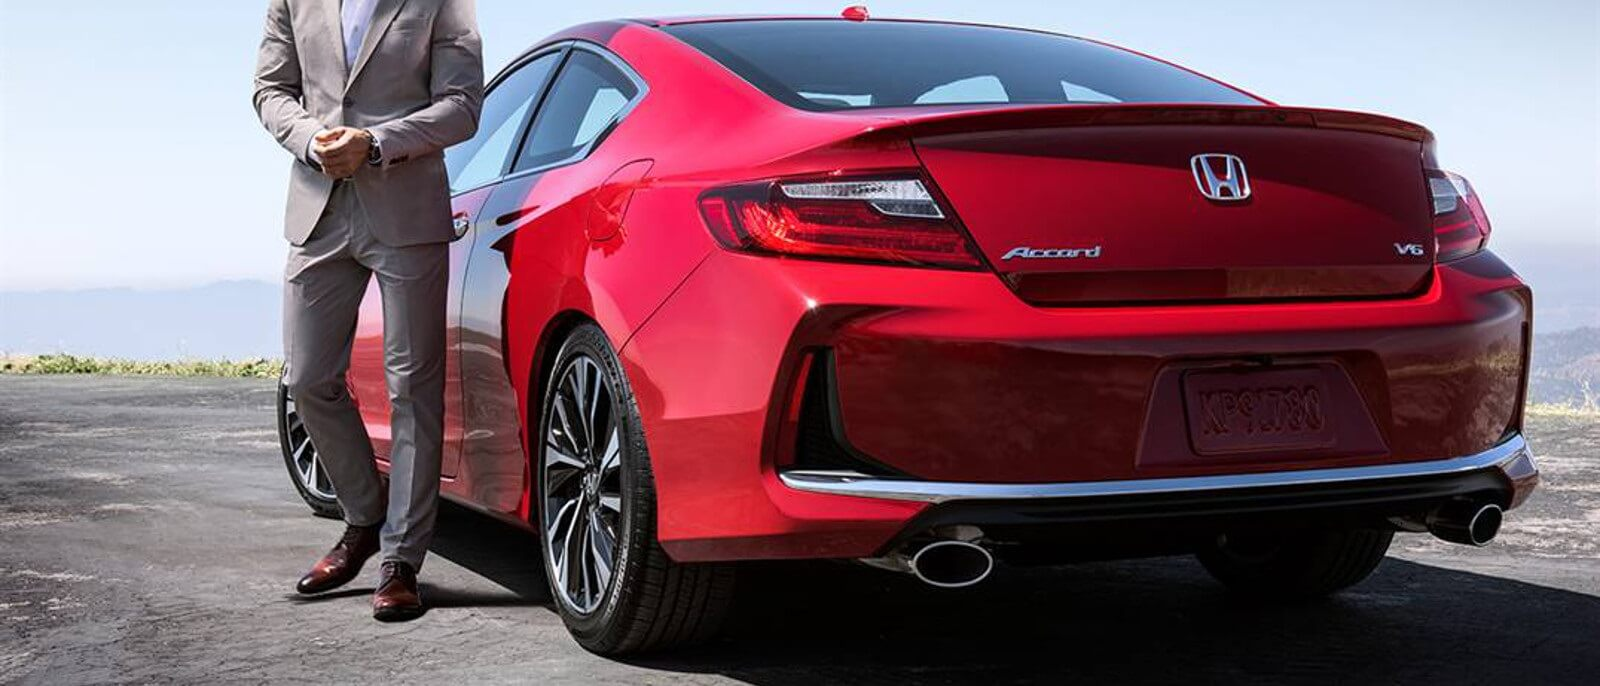 2016 Honda Accord Coupe in red